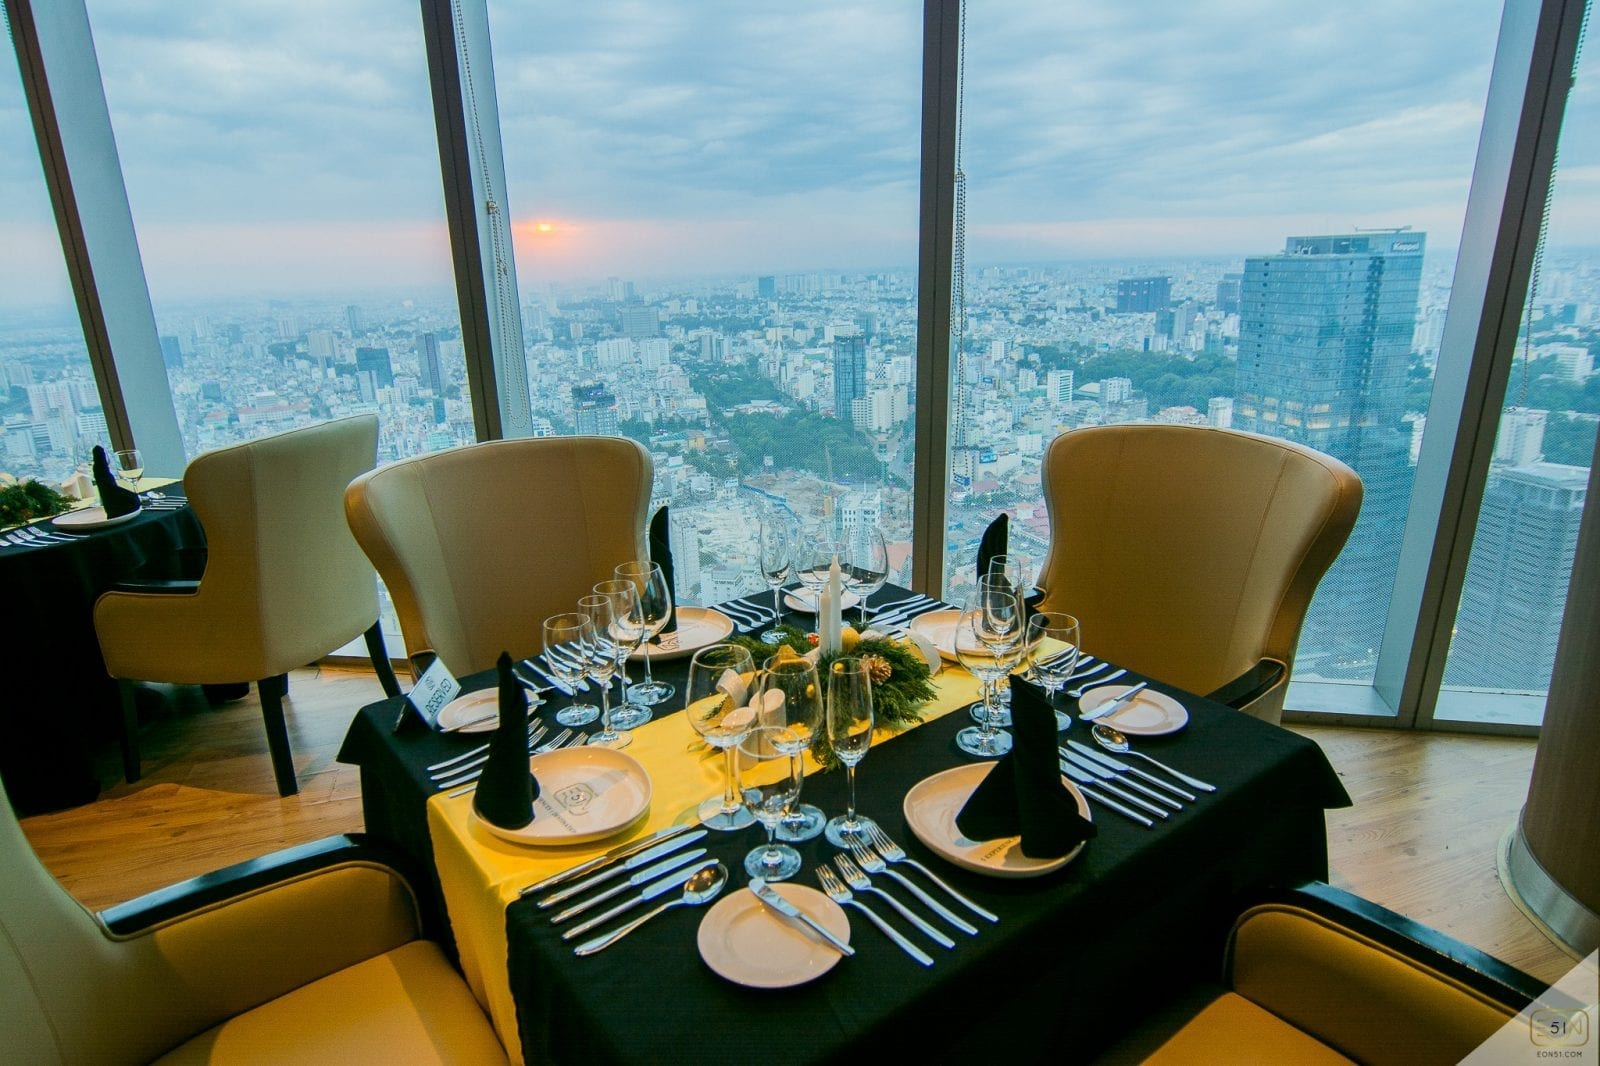 Image of the Eon51 Restaurant & Lounge in the Bitexco Financial Tower in Vietnam